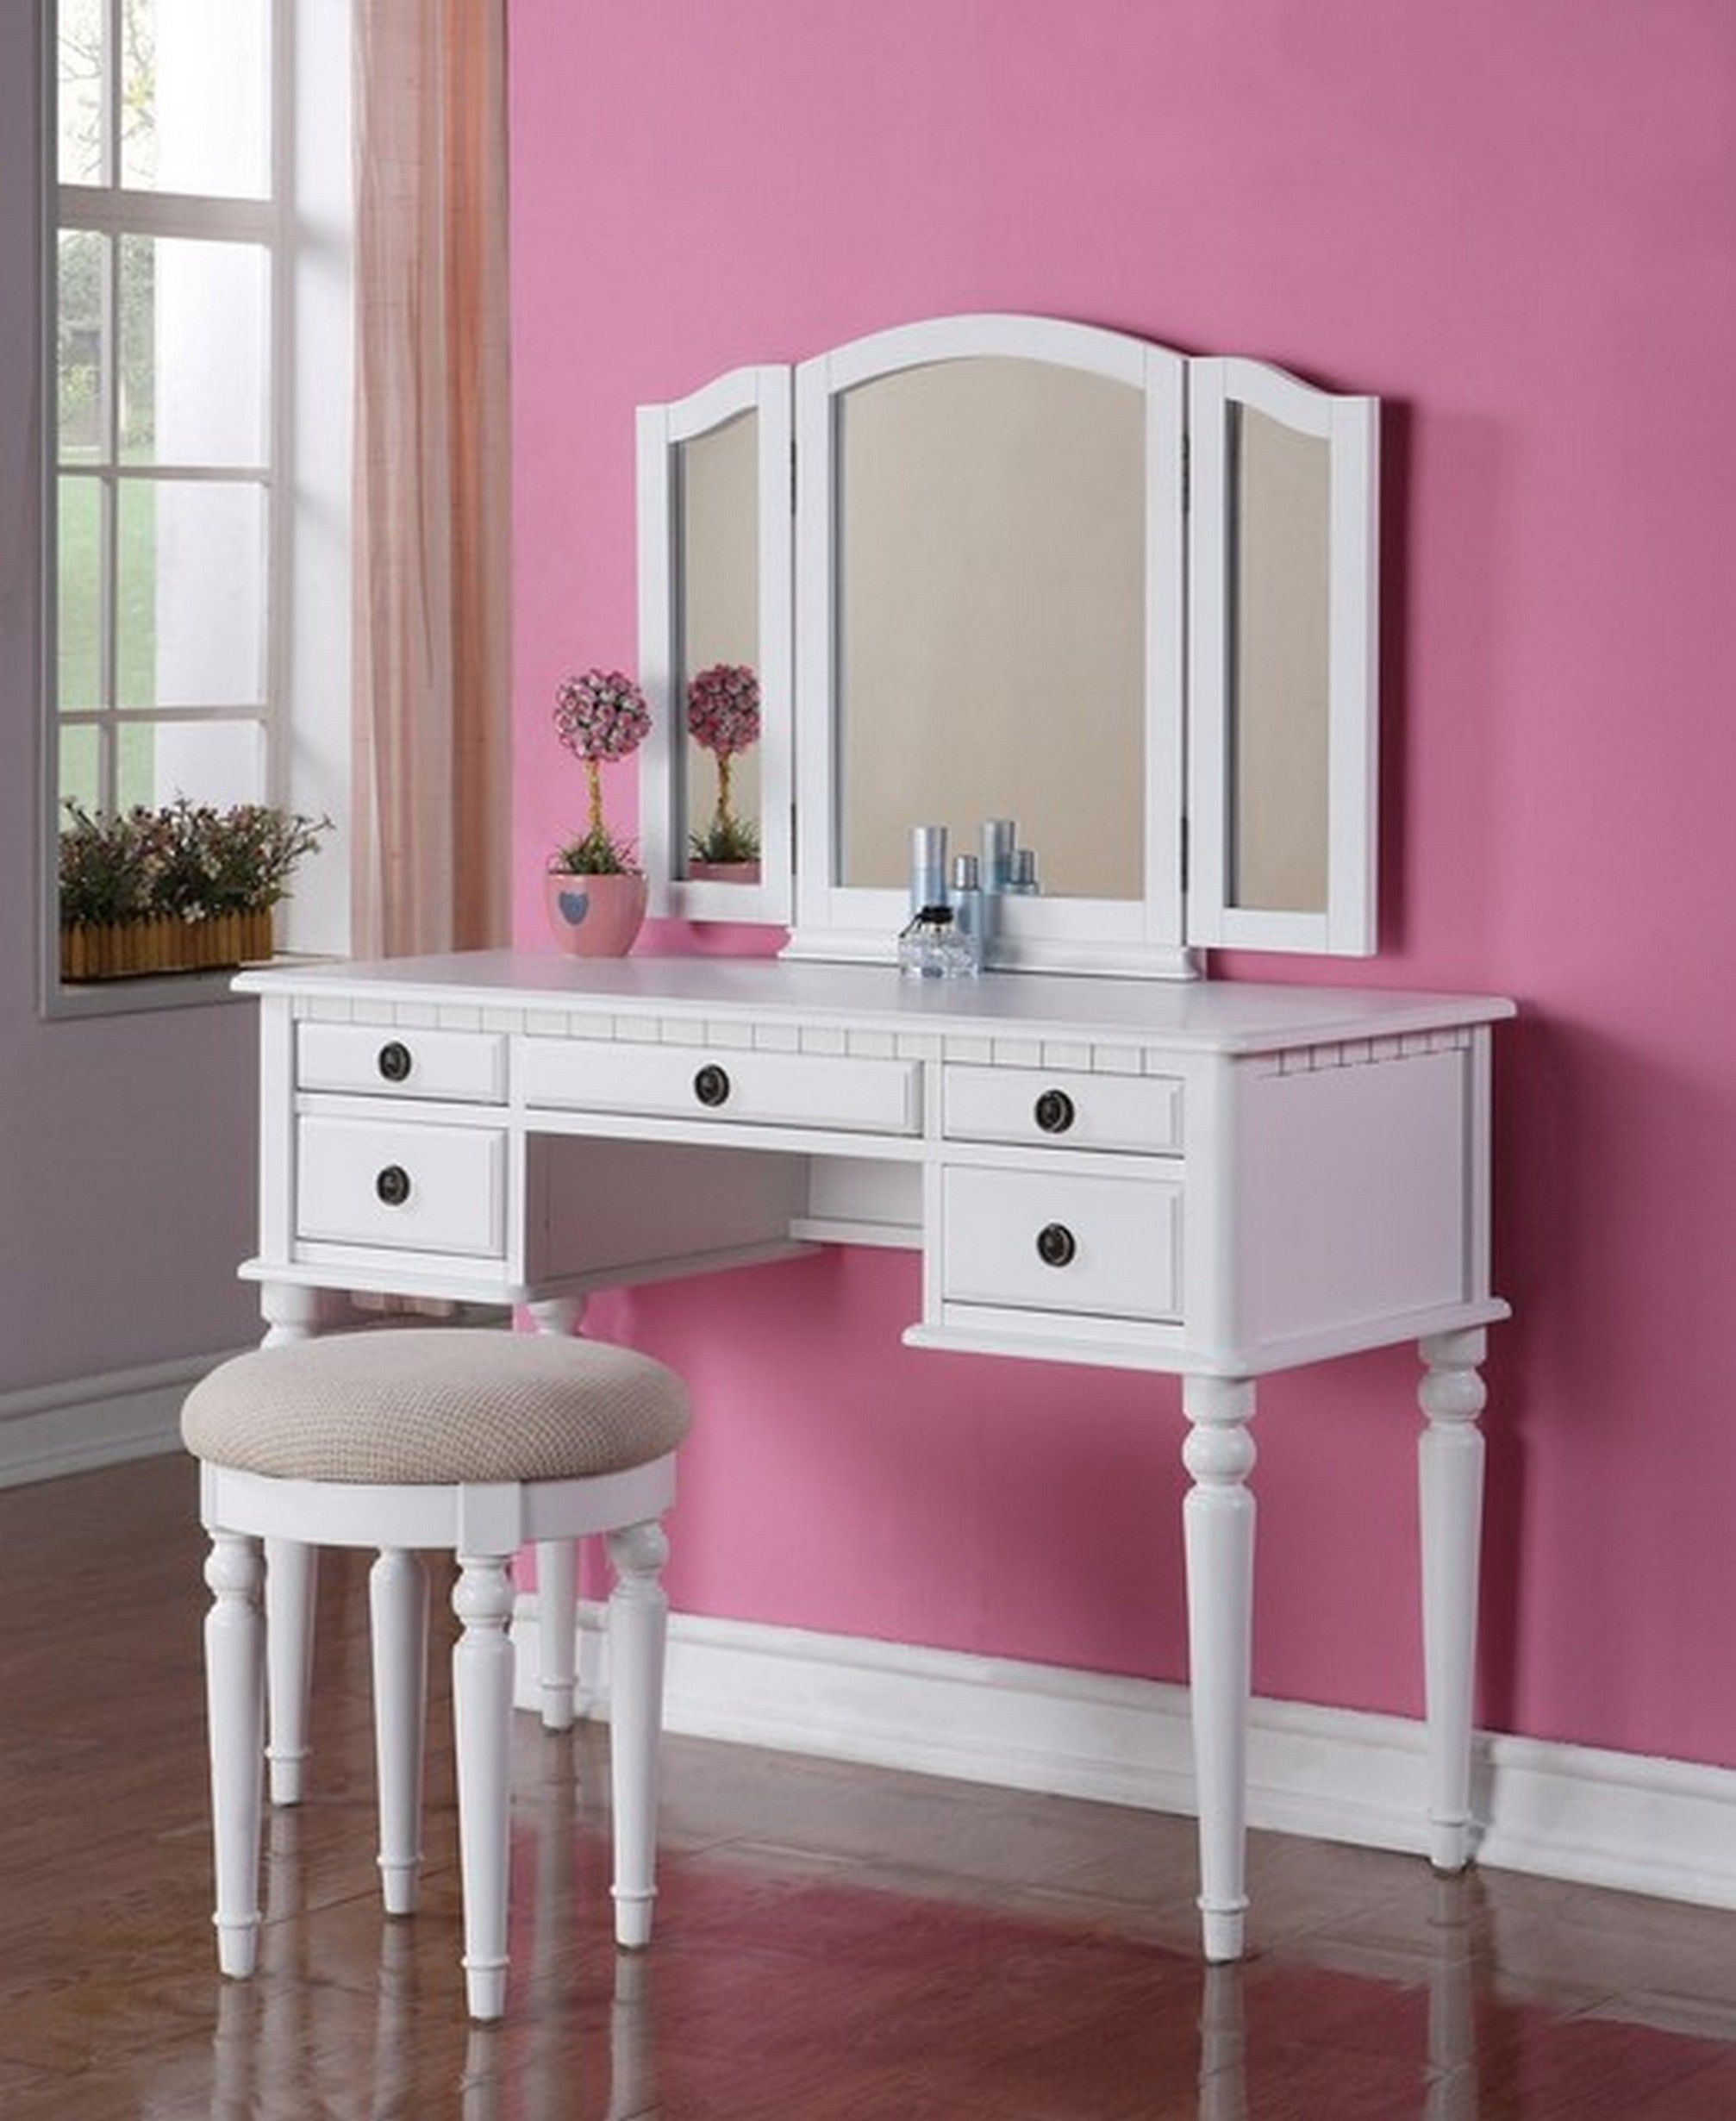 Elegant Furniture: Modern White Dressing Table With Mirror And Drawers .